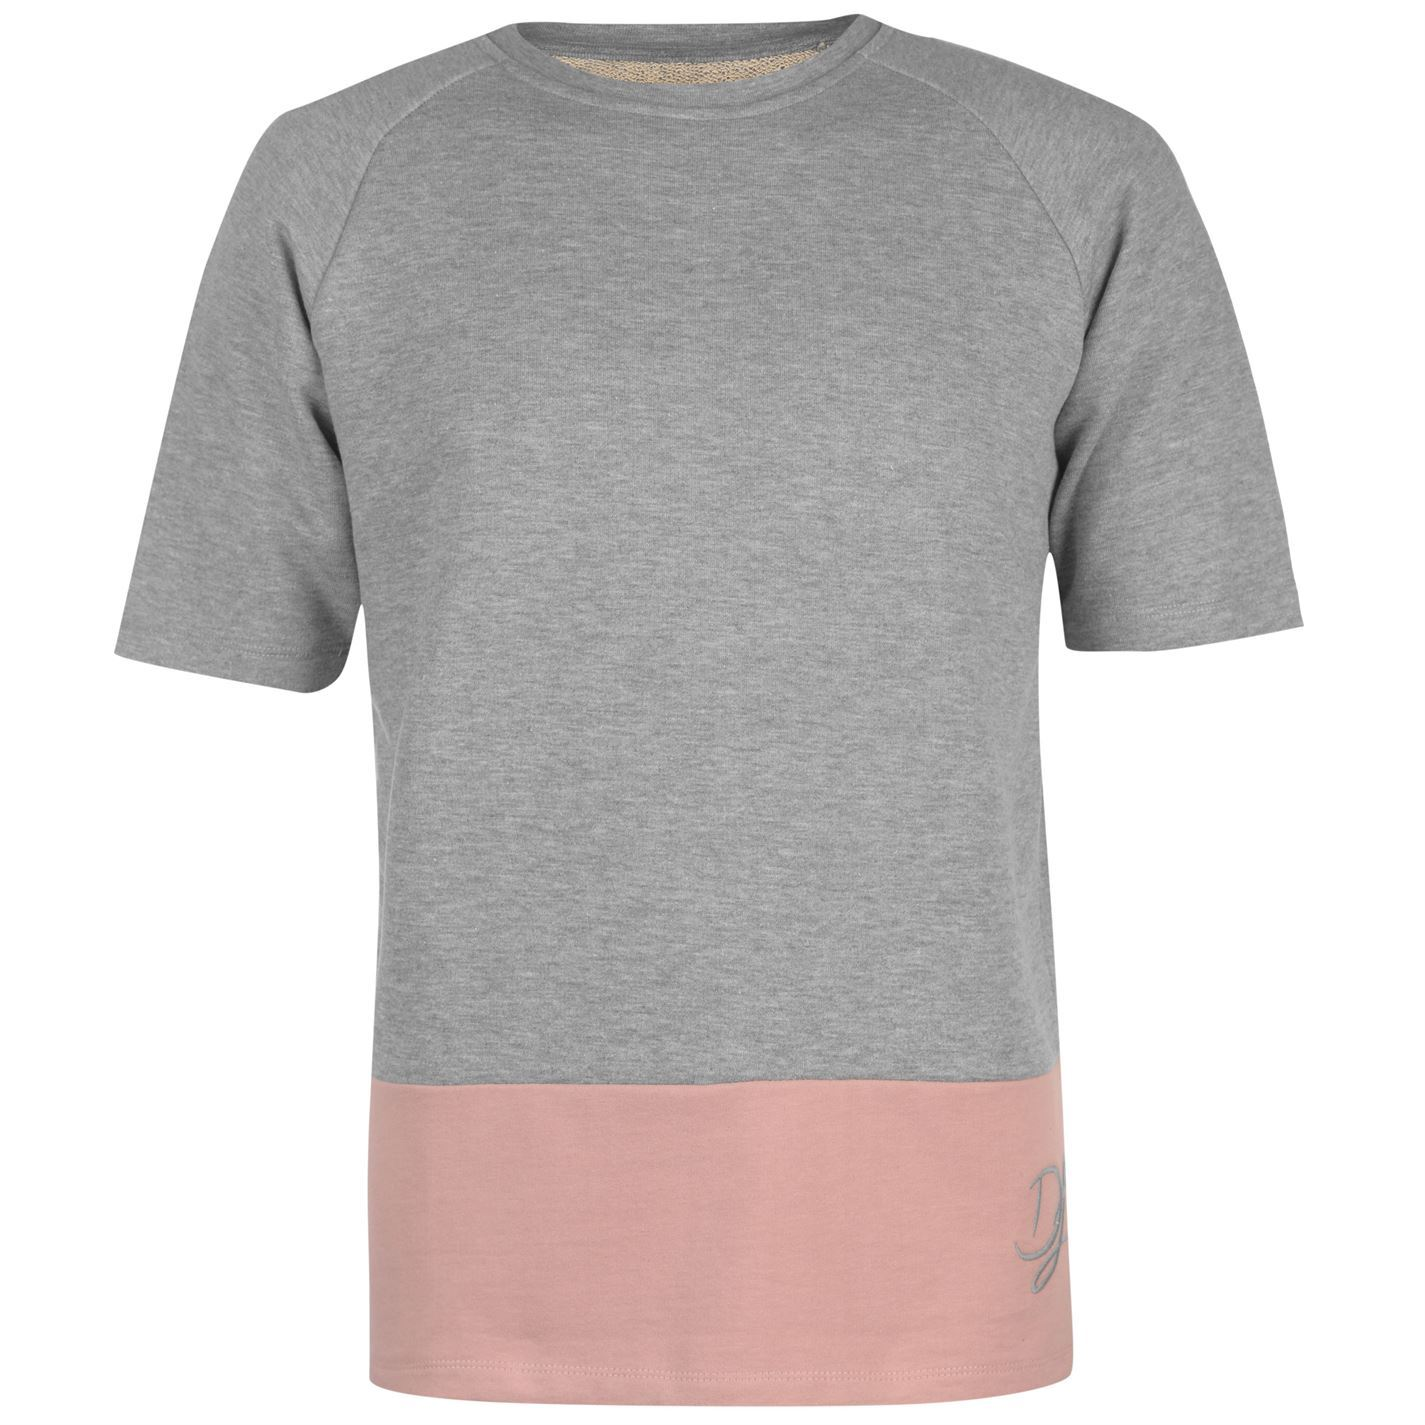 pretty cheap better better price for Details about Dead Legacy Short Sleeve Sweatshirt Mens Grey/Pink Sweater  Top Jumper